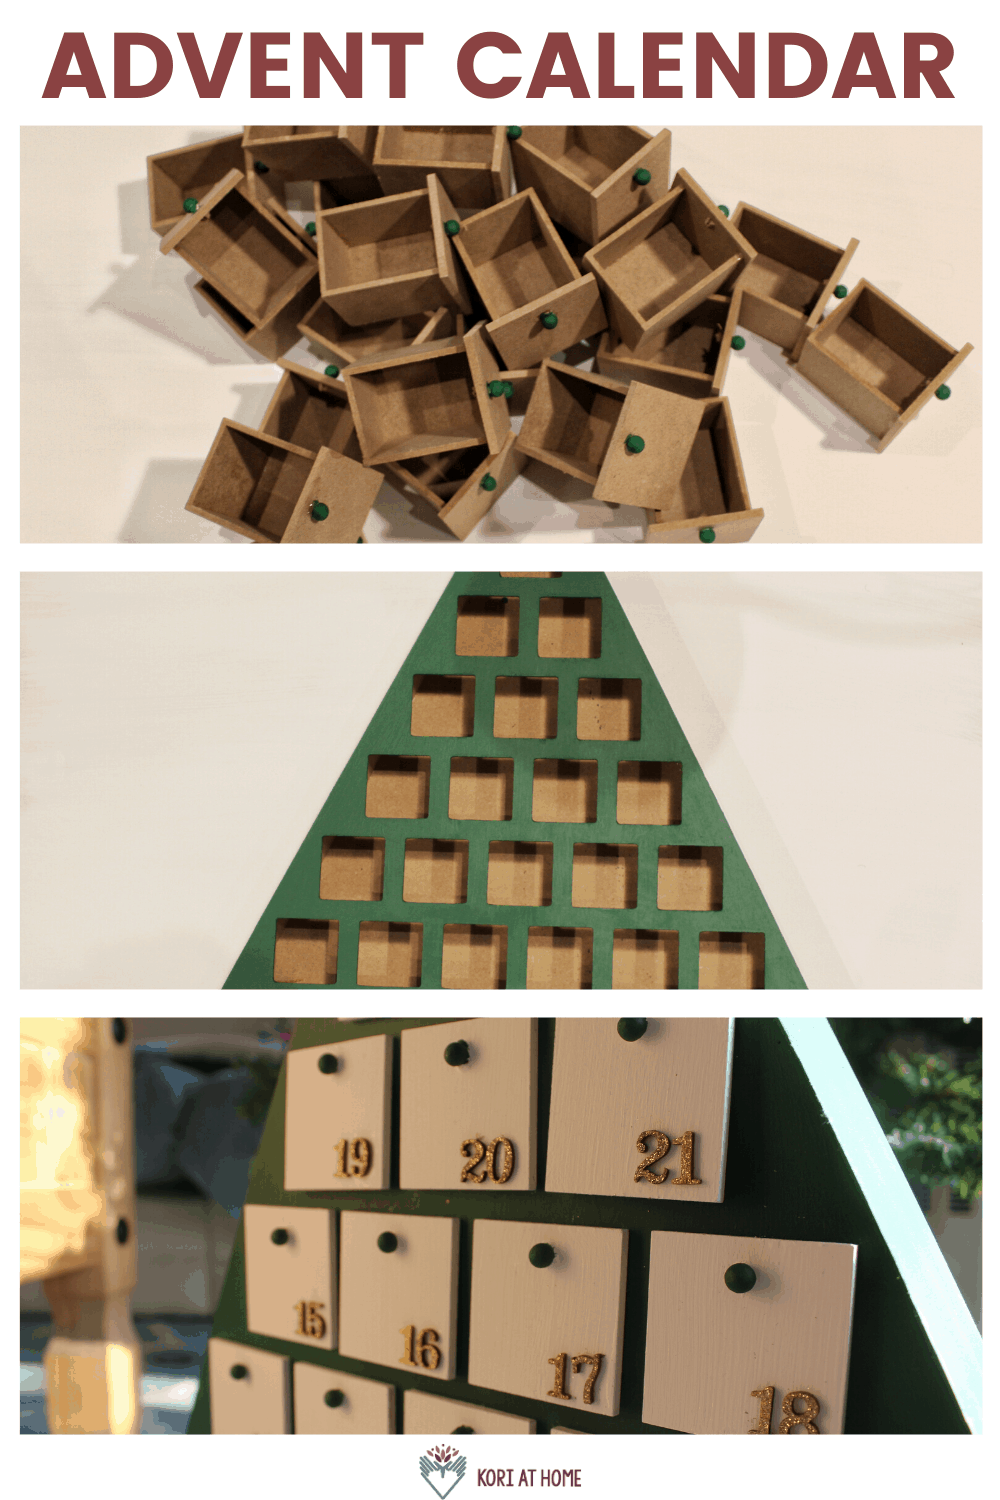 How to Customize and Use Your Wooden Tree Advent Calendar 2